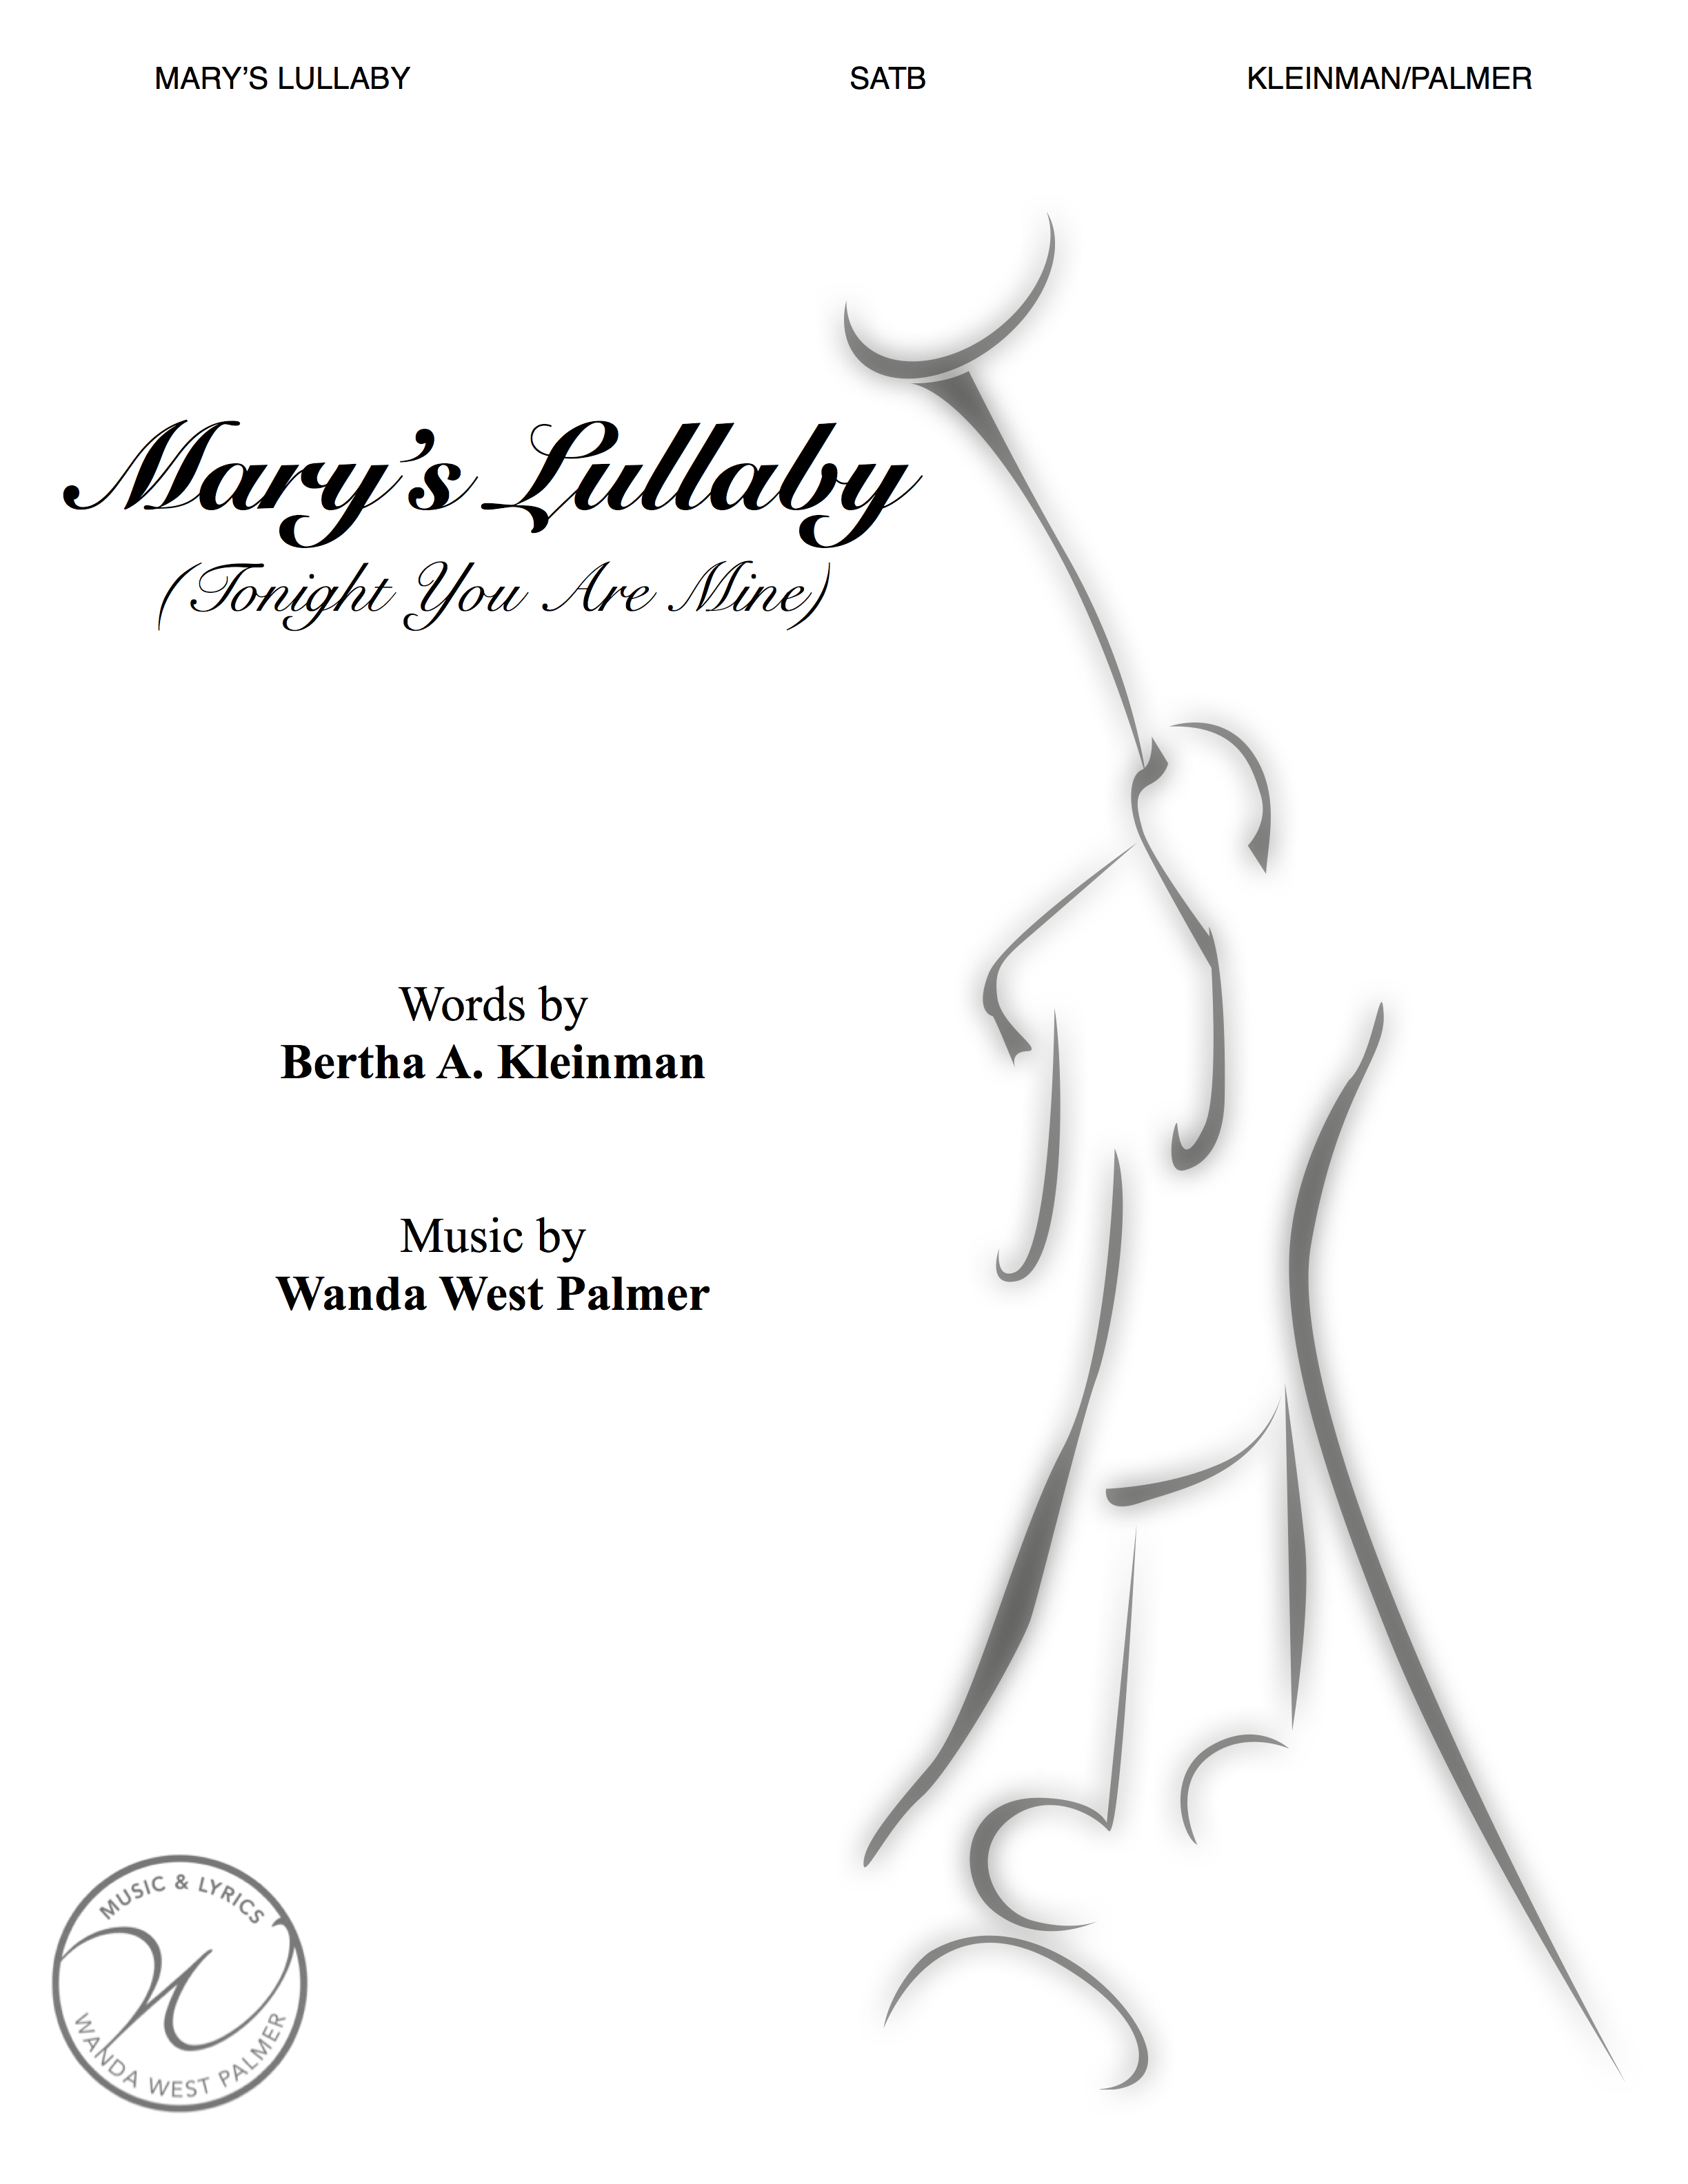 Mary's Lullaby - SATB